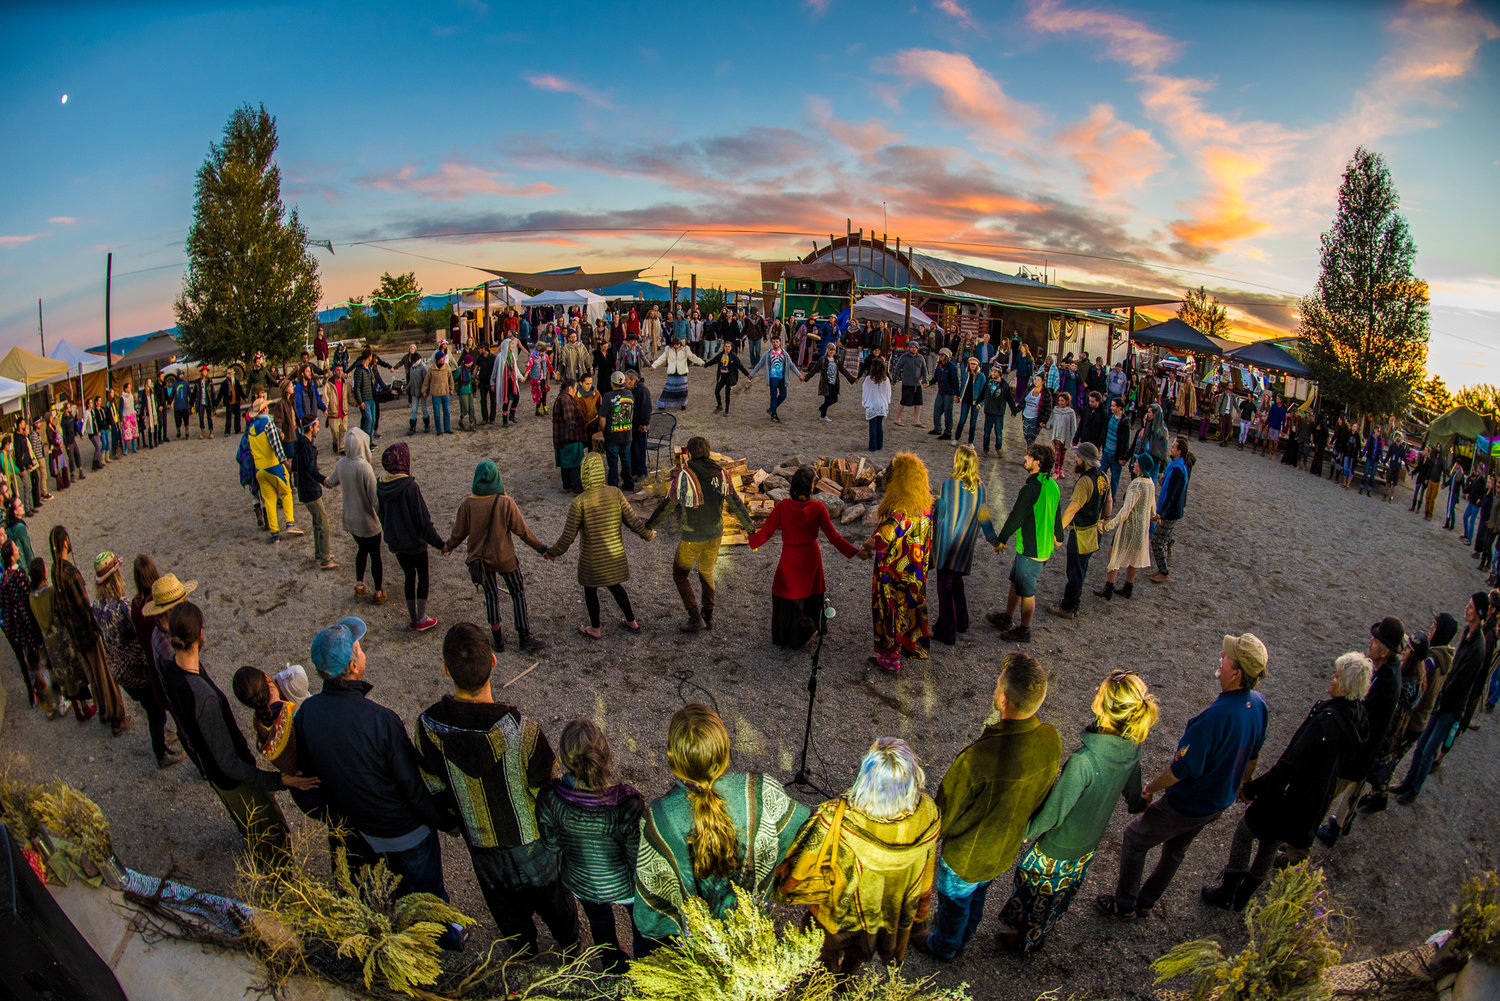 The  Jumpsuit Family Gathering  took place in  Taos, NM  last September